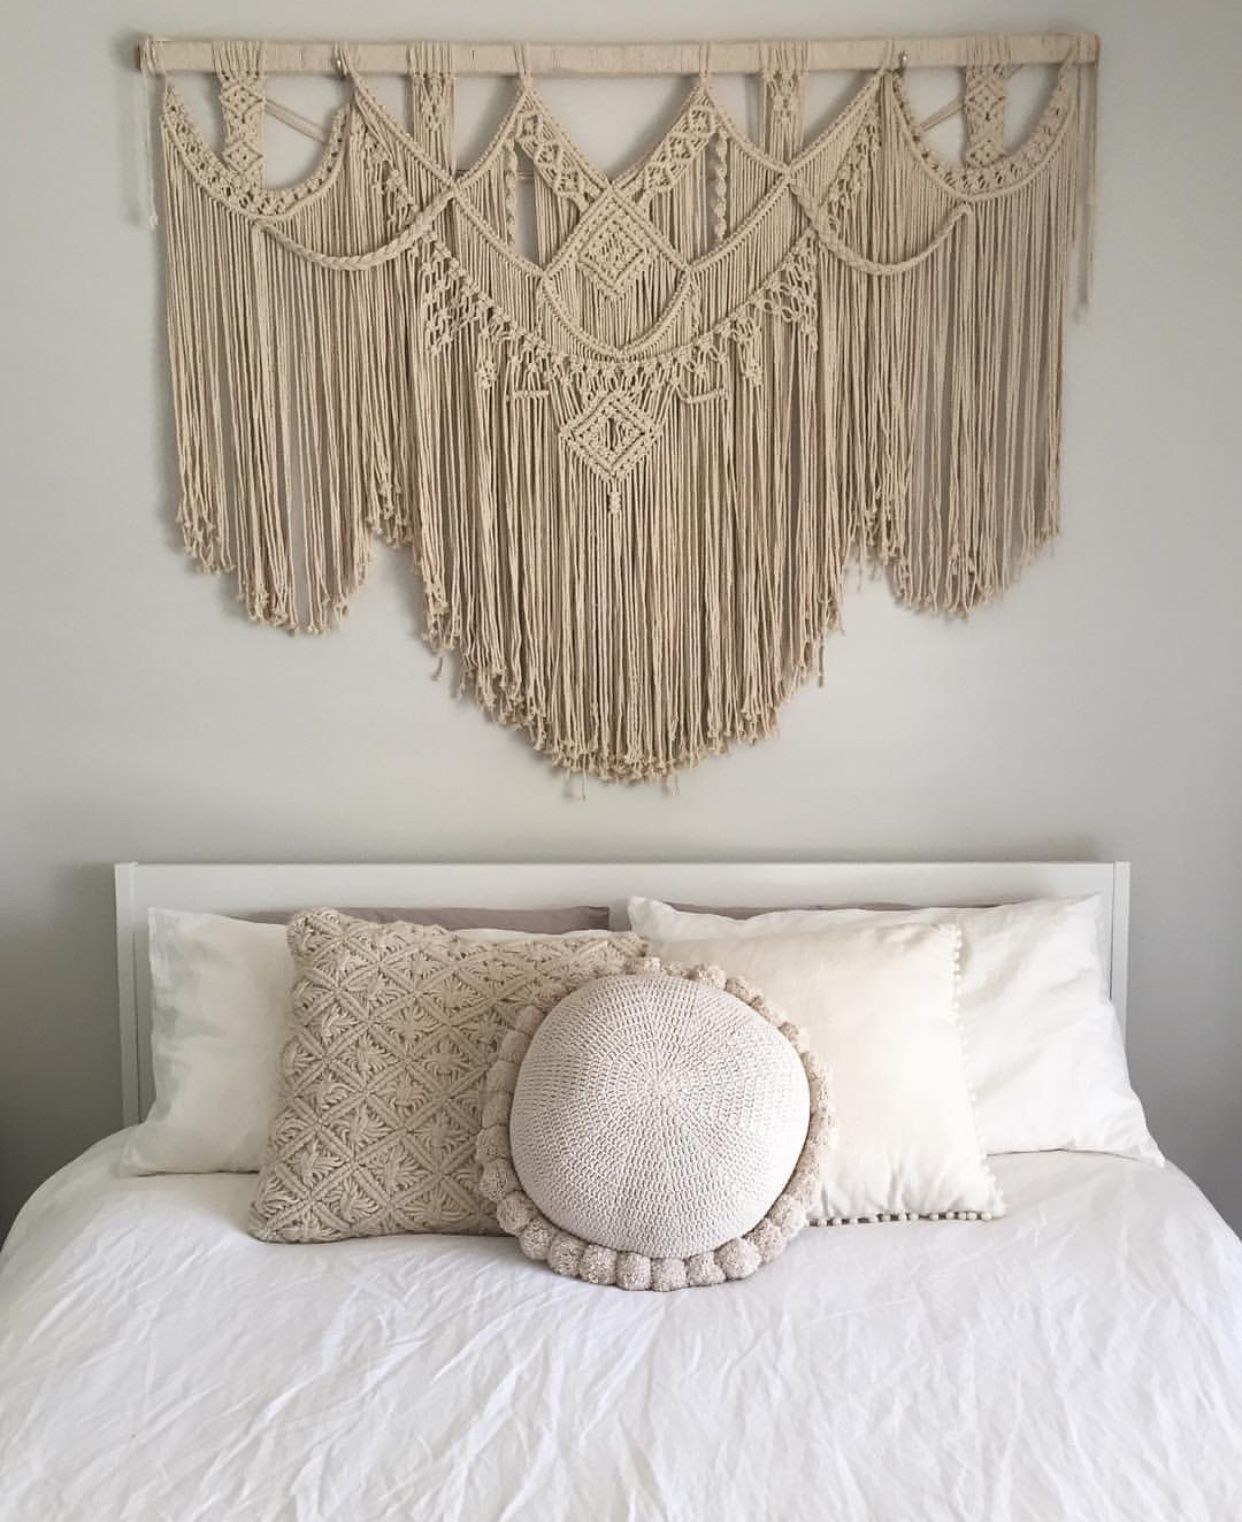 Boho Bedroom Www Closelyknit Com Au Boho Bedroomdecor Diy Crafts For Bedroom Boho Bedroom Diy Diy Home Decor Bedroom